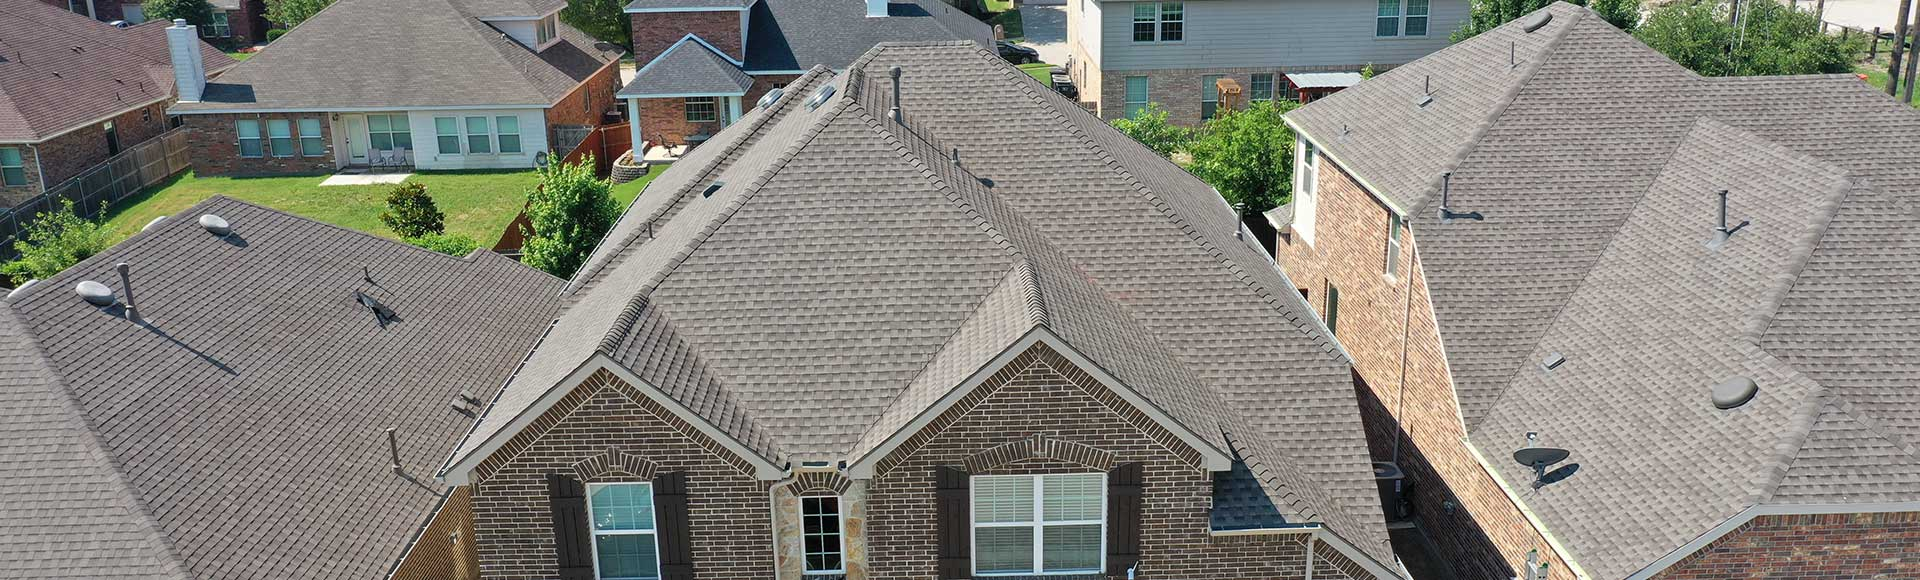 Mckinney General Contractor, Roofing Company and Roofing Contractor